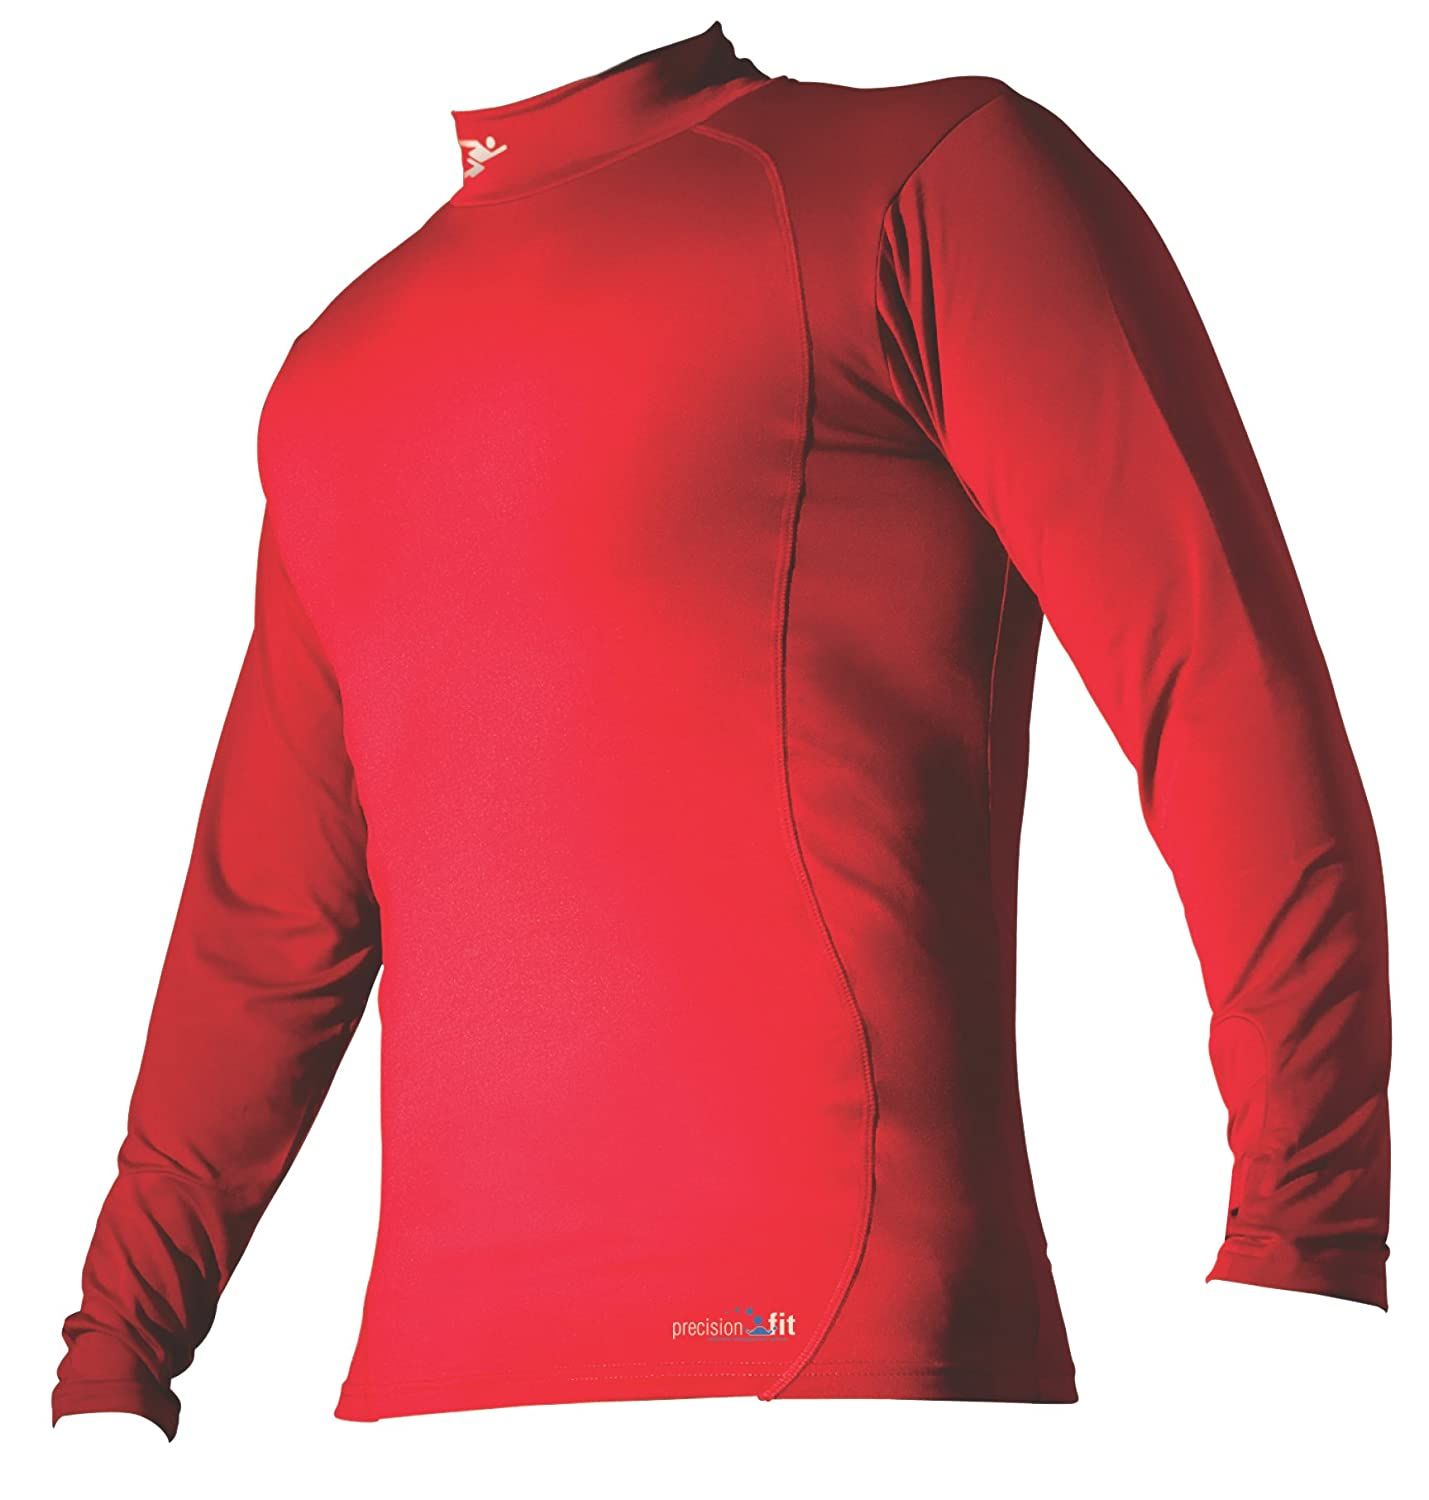 Precision Base Layer Long Sleeve Turtle Neck Shirt